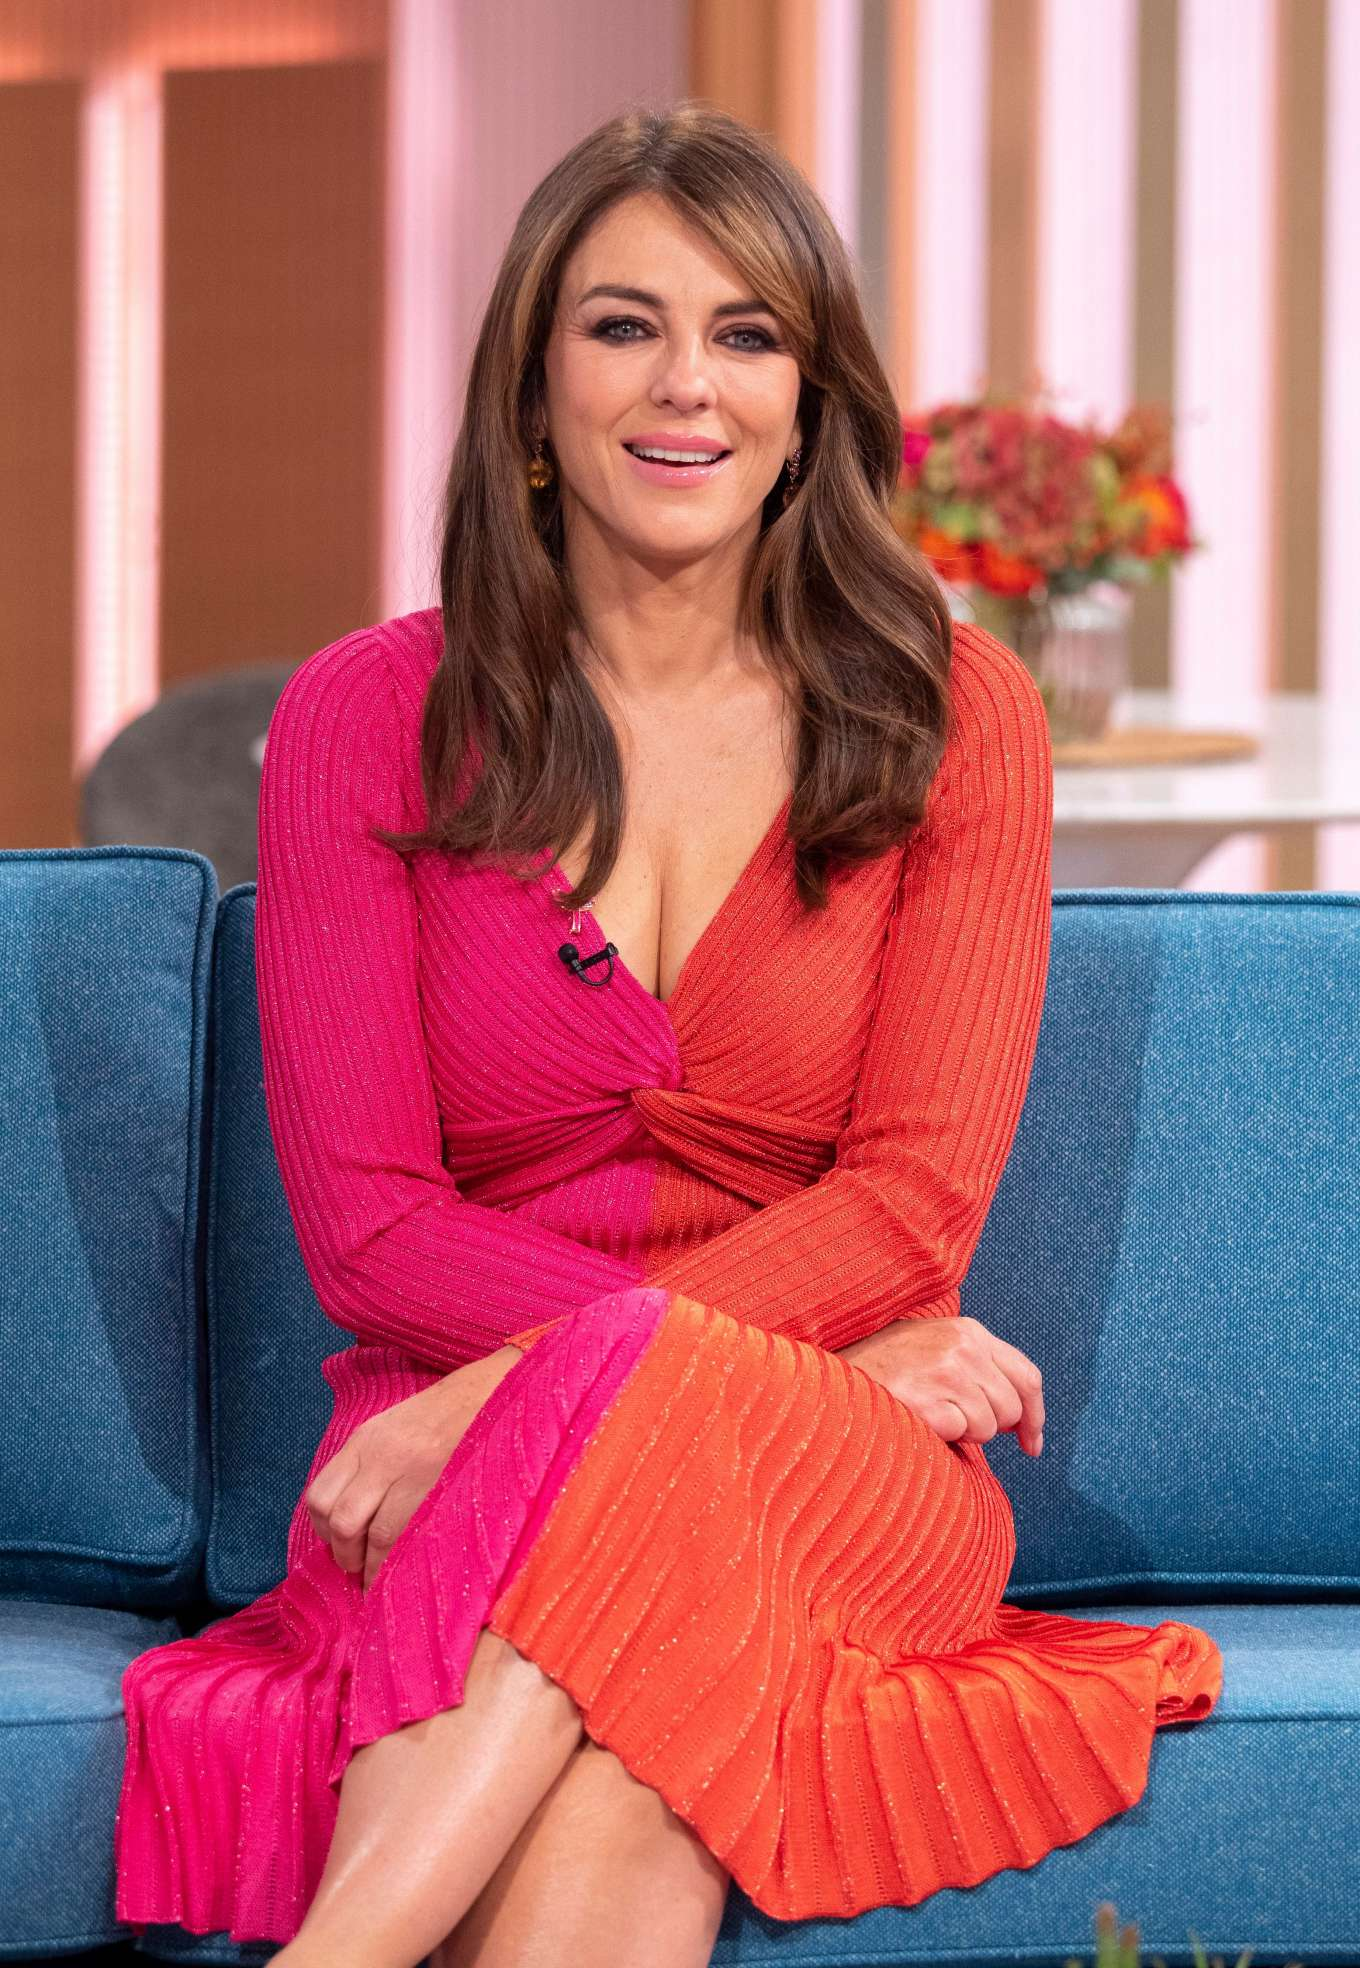 Elizabeth Hurley - On 'This Morning' TV Show in London